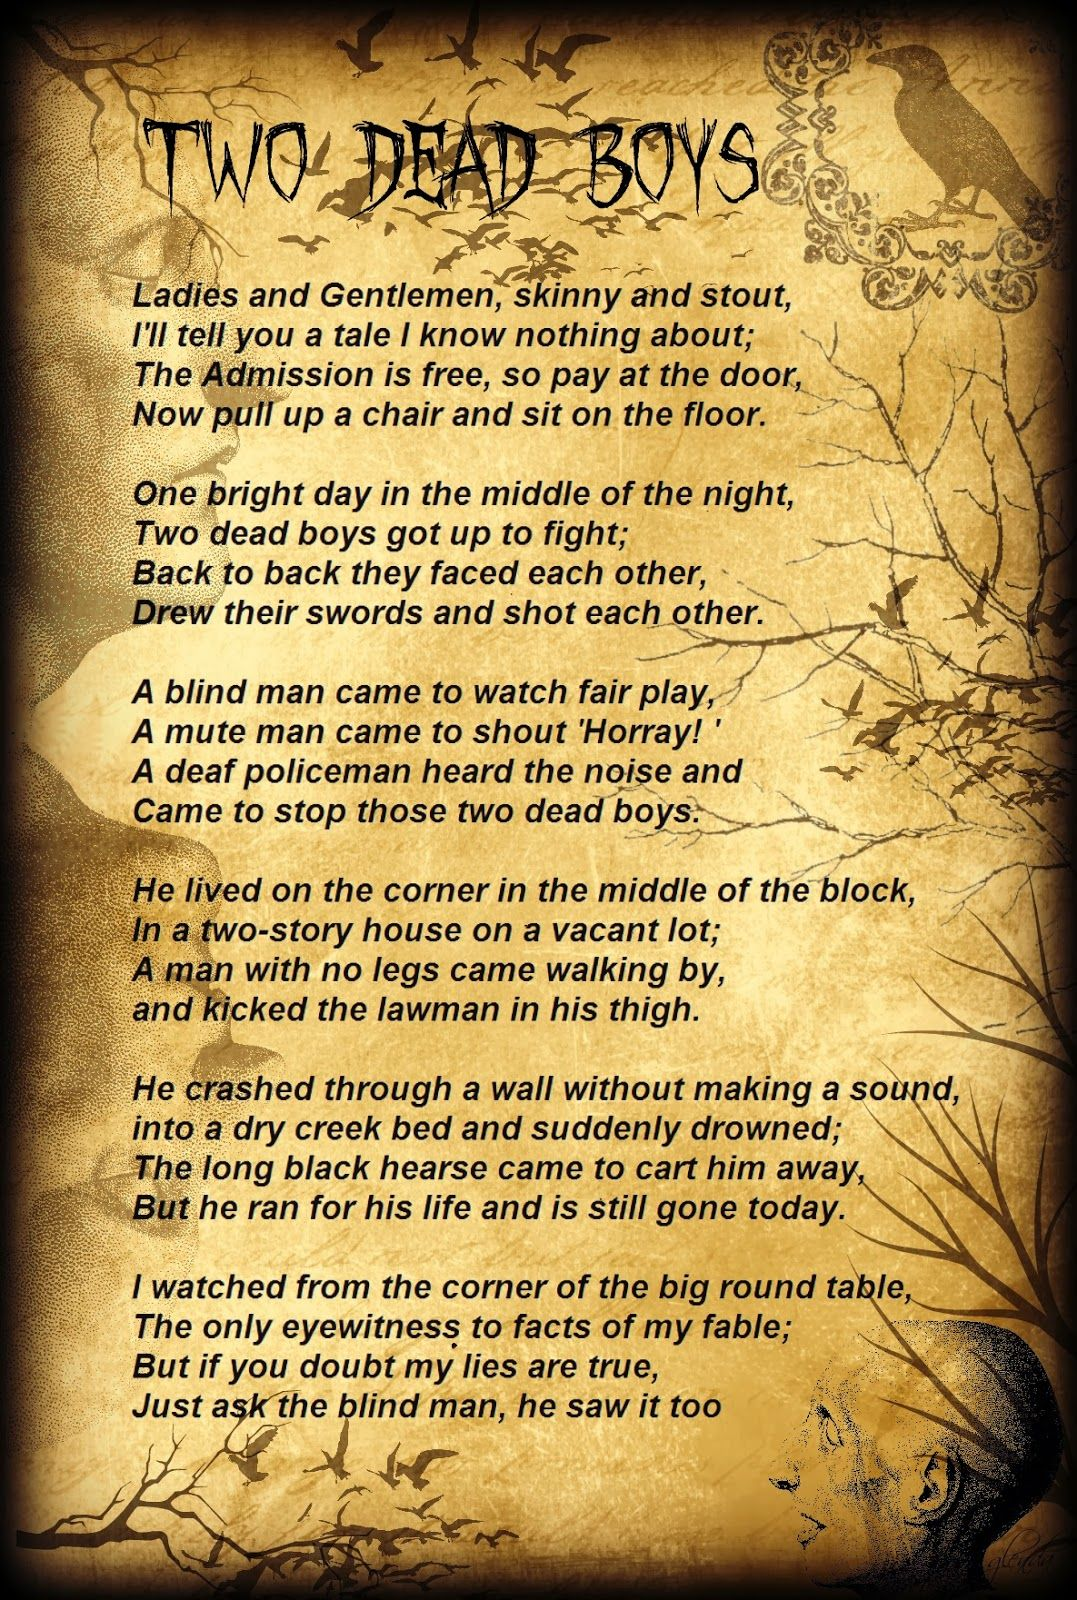 two dead boys jpg times meanings poems and creepy stories